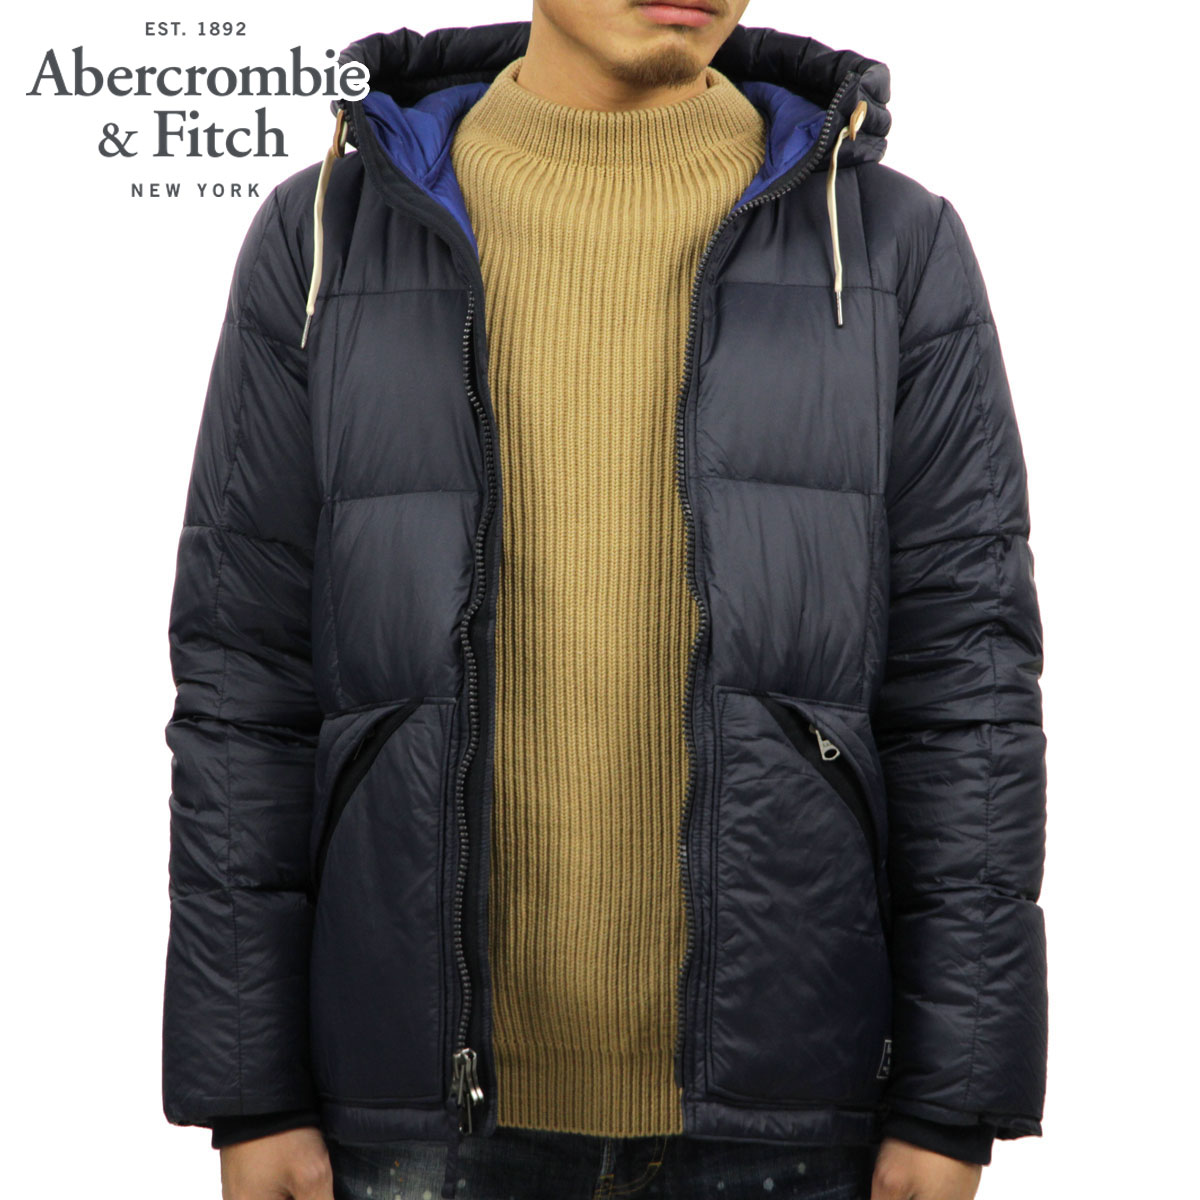 90965cf3c ABBA black outer men's regular article Abercrombie & Fitch jacket down  jacket ULTRA PUFFER 132-327-0519-200